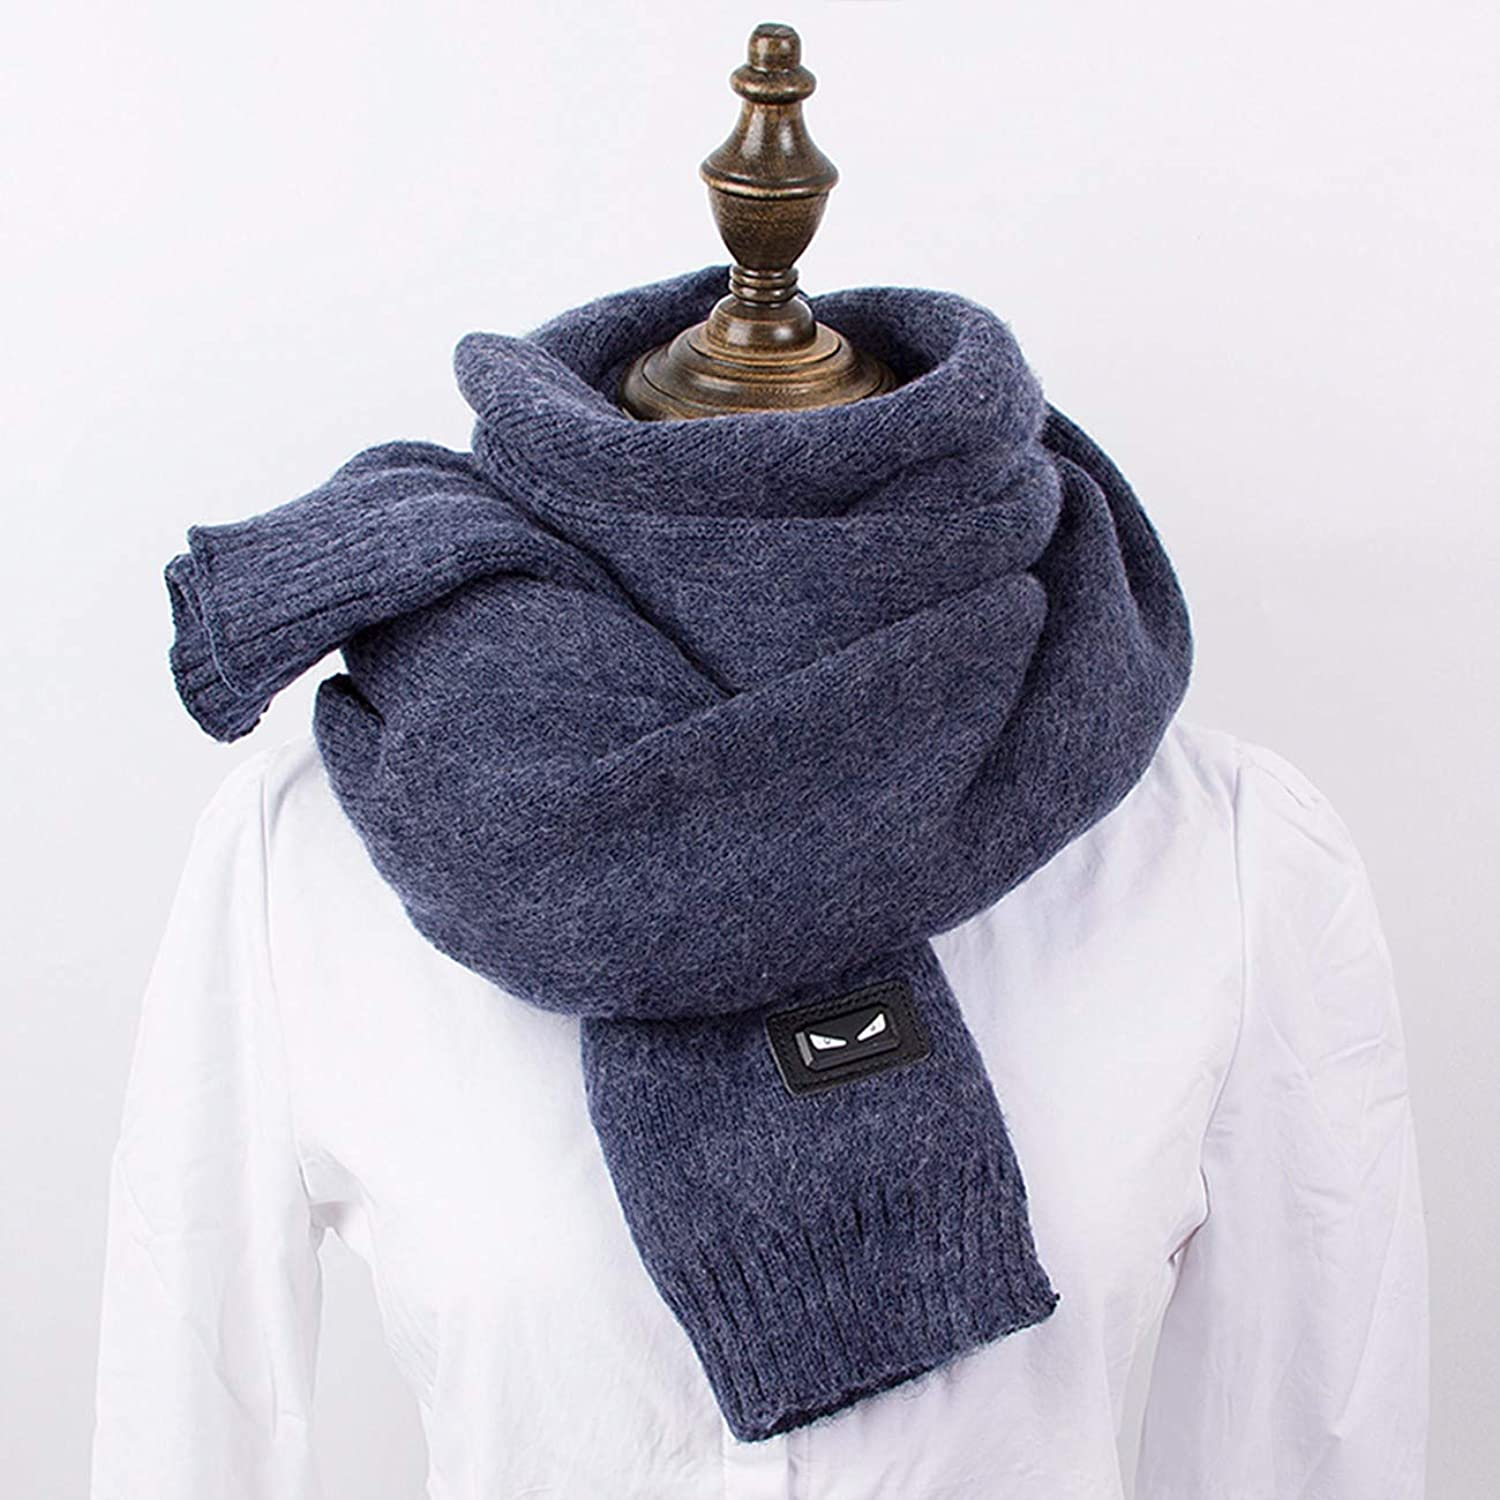 Scarf, Student's Thickened Knitted Neck